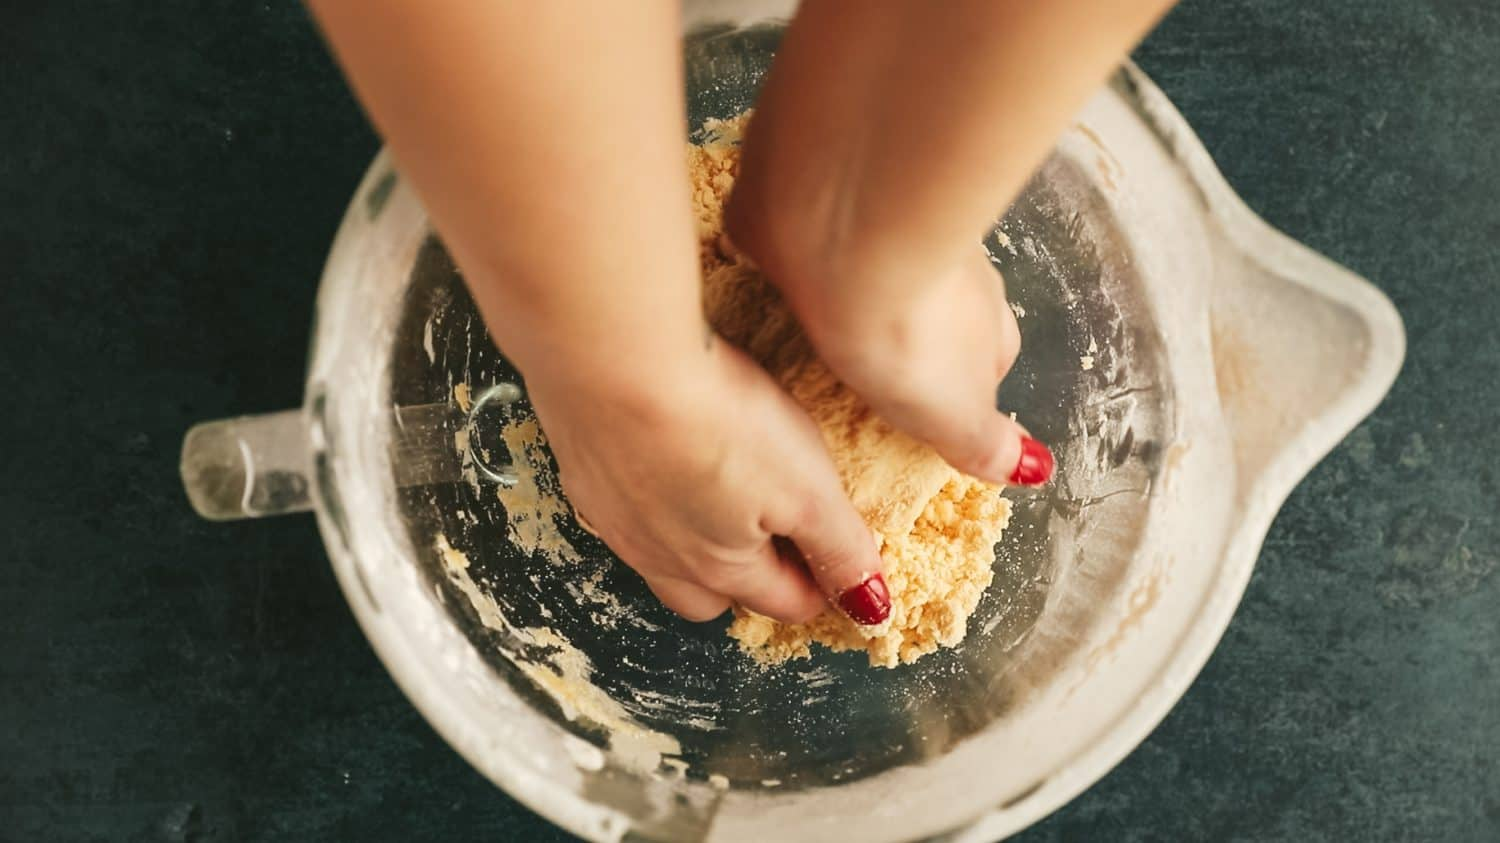 A mixing bowl with hands reaching in to knead dough.